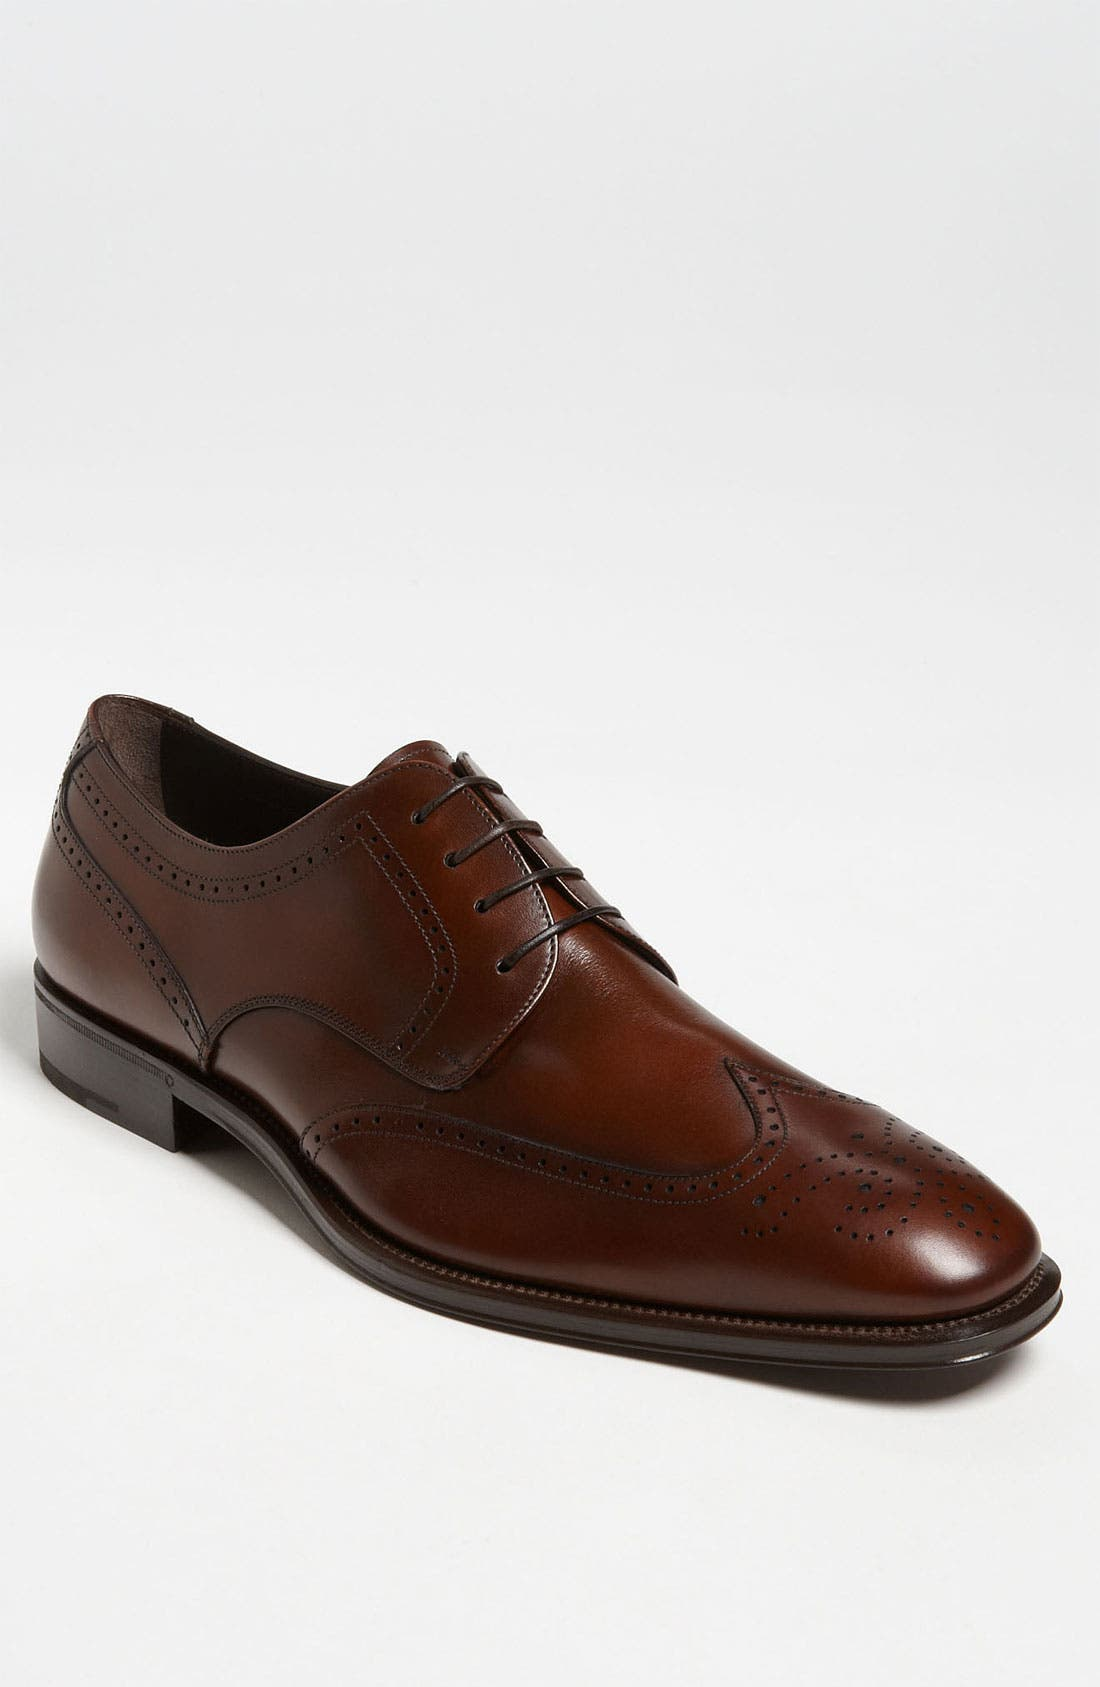 Alternate Image 1 Selected - Salvatore Ferragamo 'Taylor' Wingtip